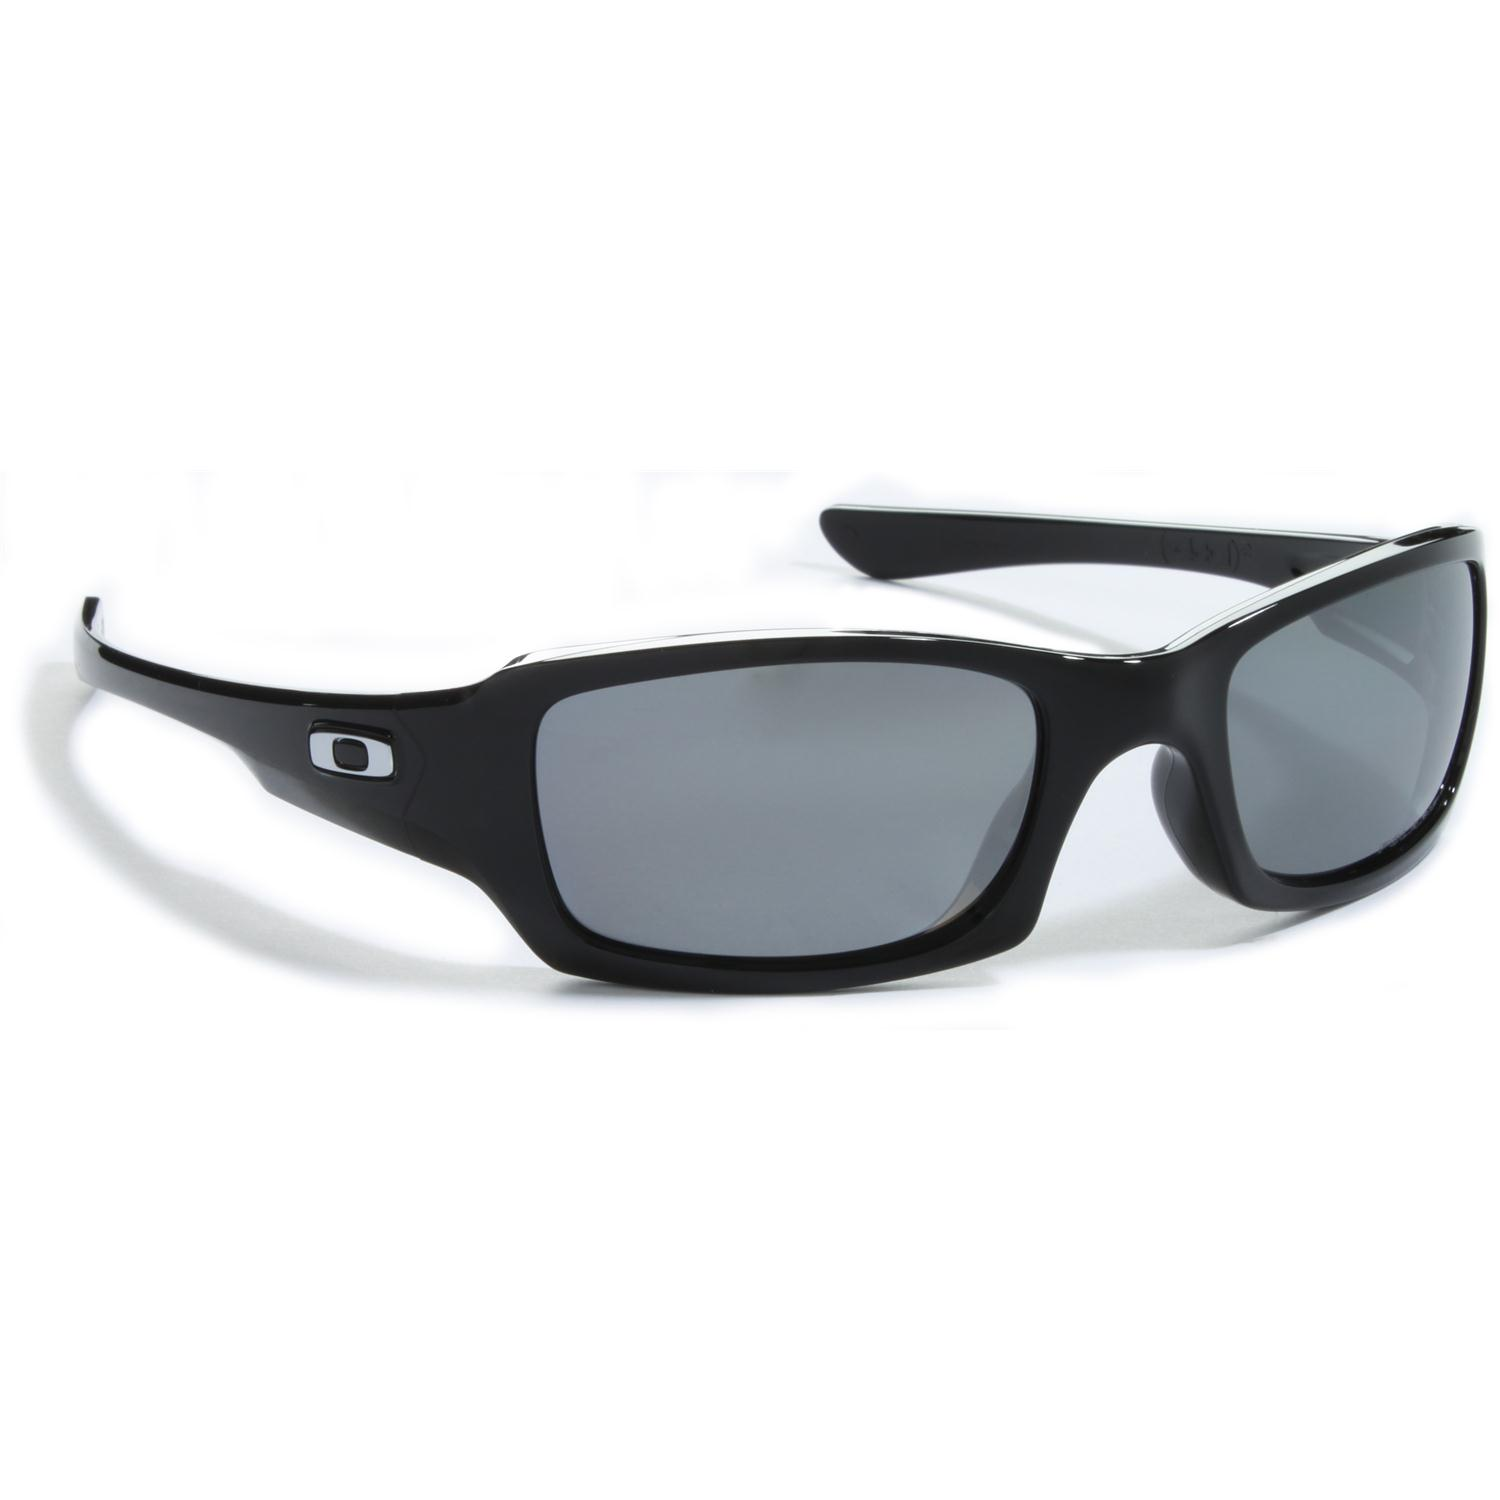 Sunglasses Polarized 1d5u